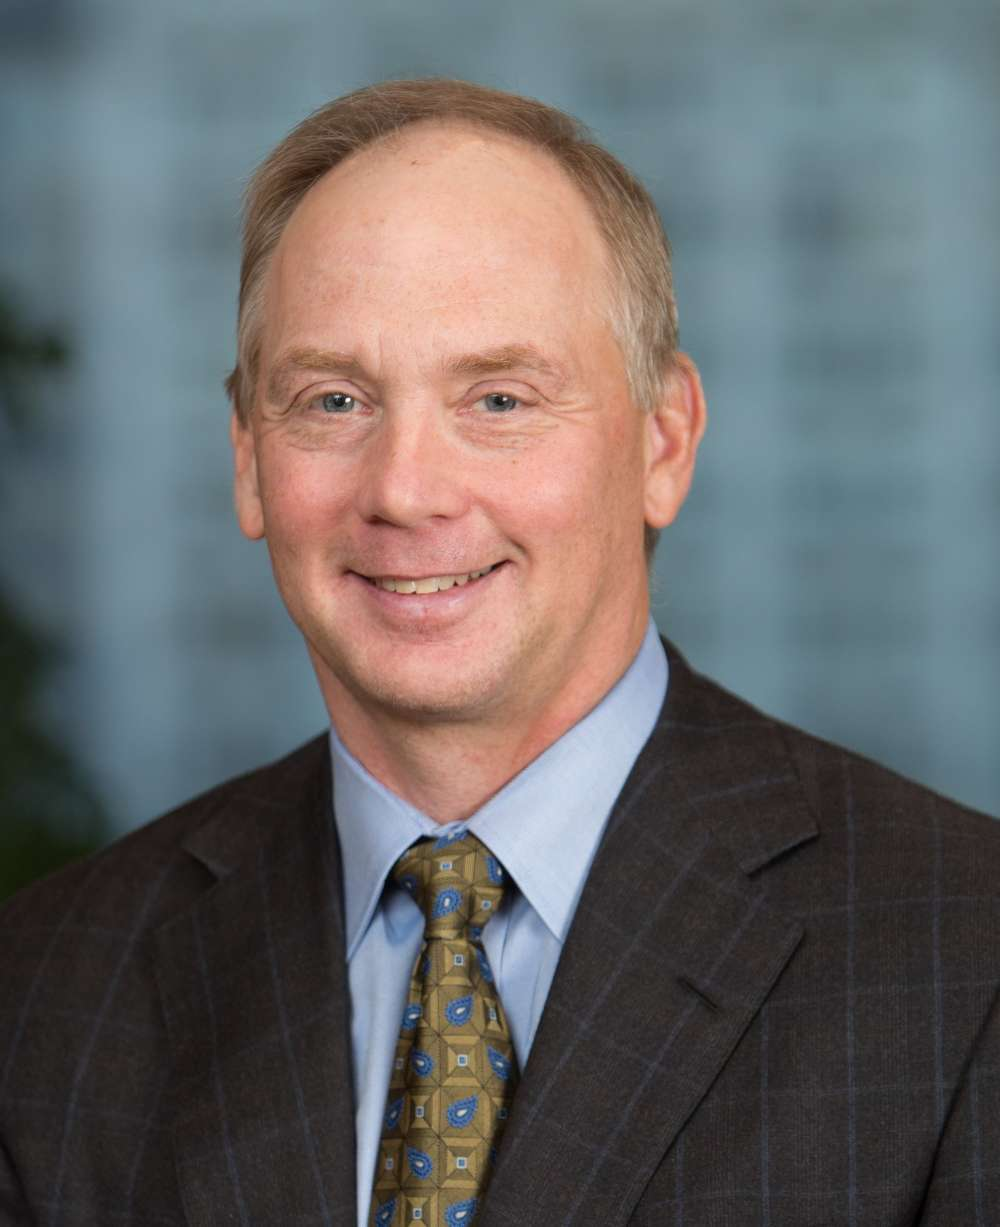 Brad Halverson, the CFO at Caterpillar Inc., will retire early next year, concluding a career with the heavy machinery manufacturer that spans three decades.